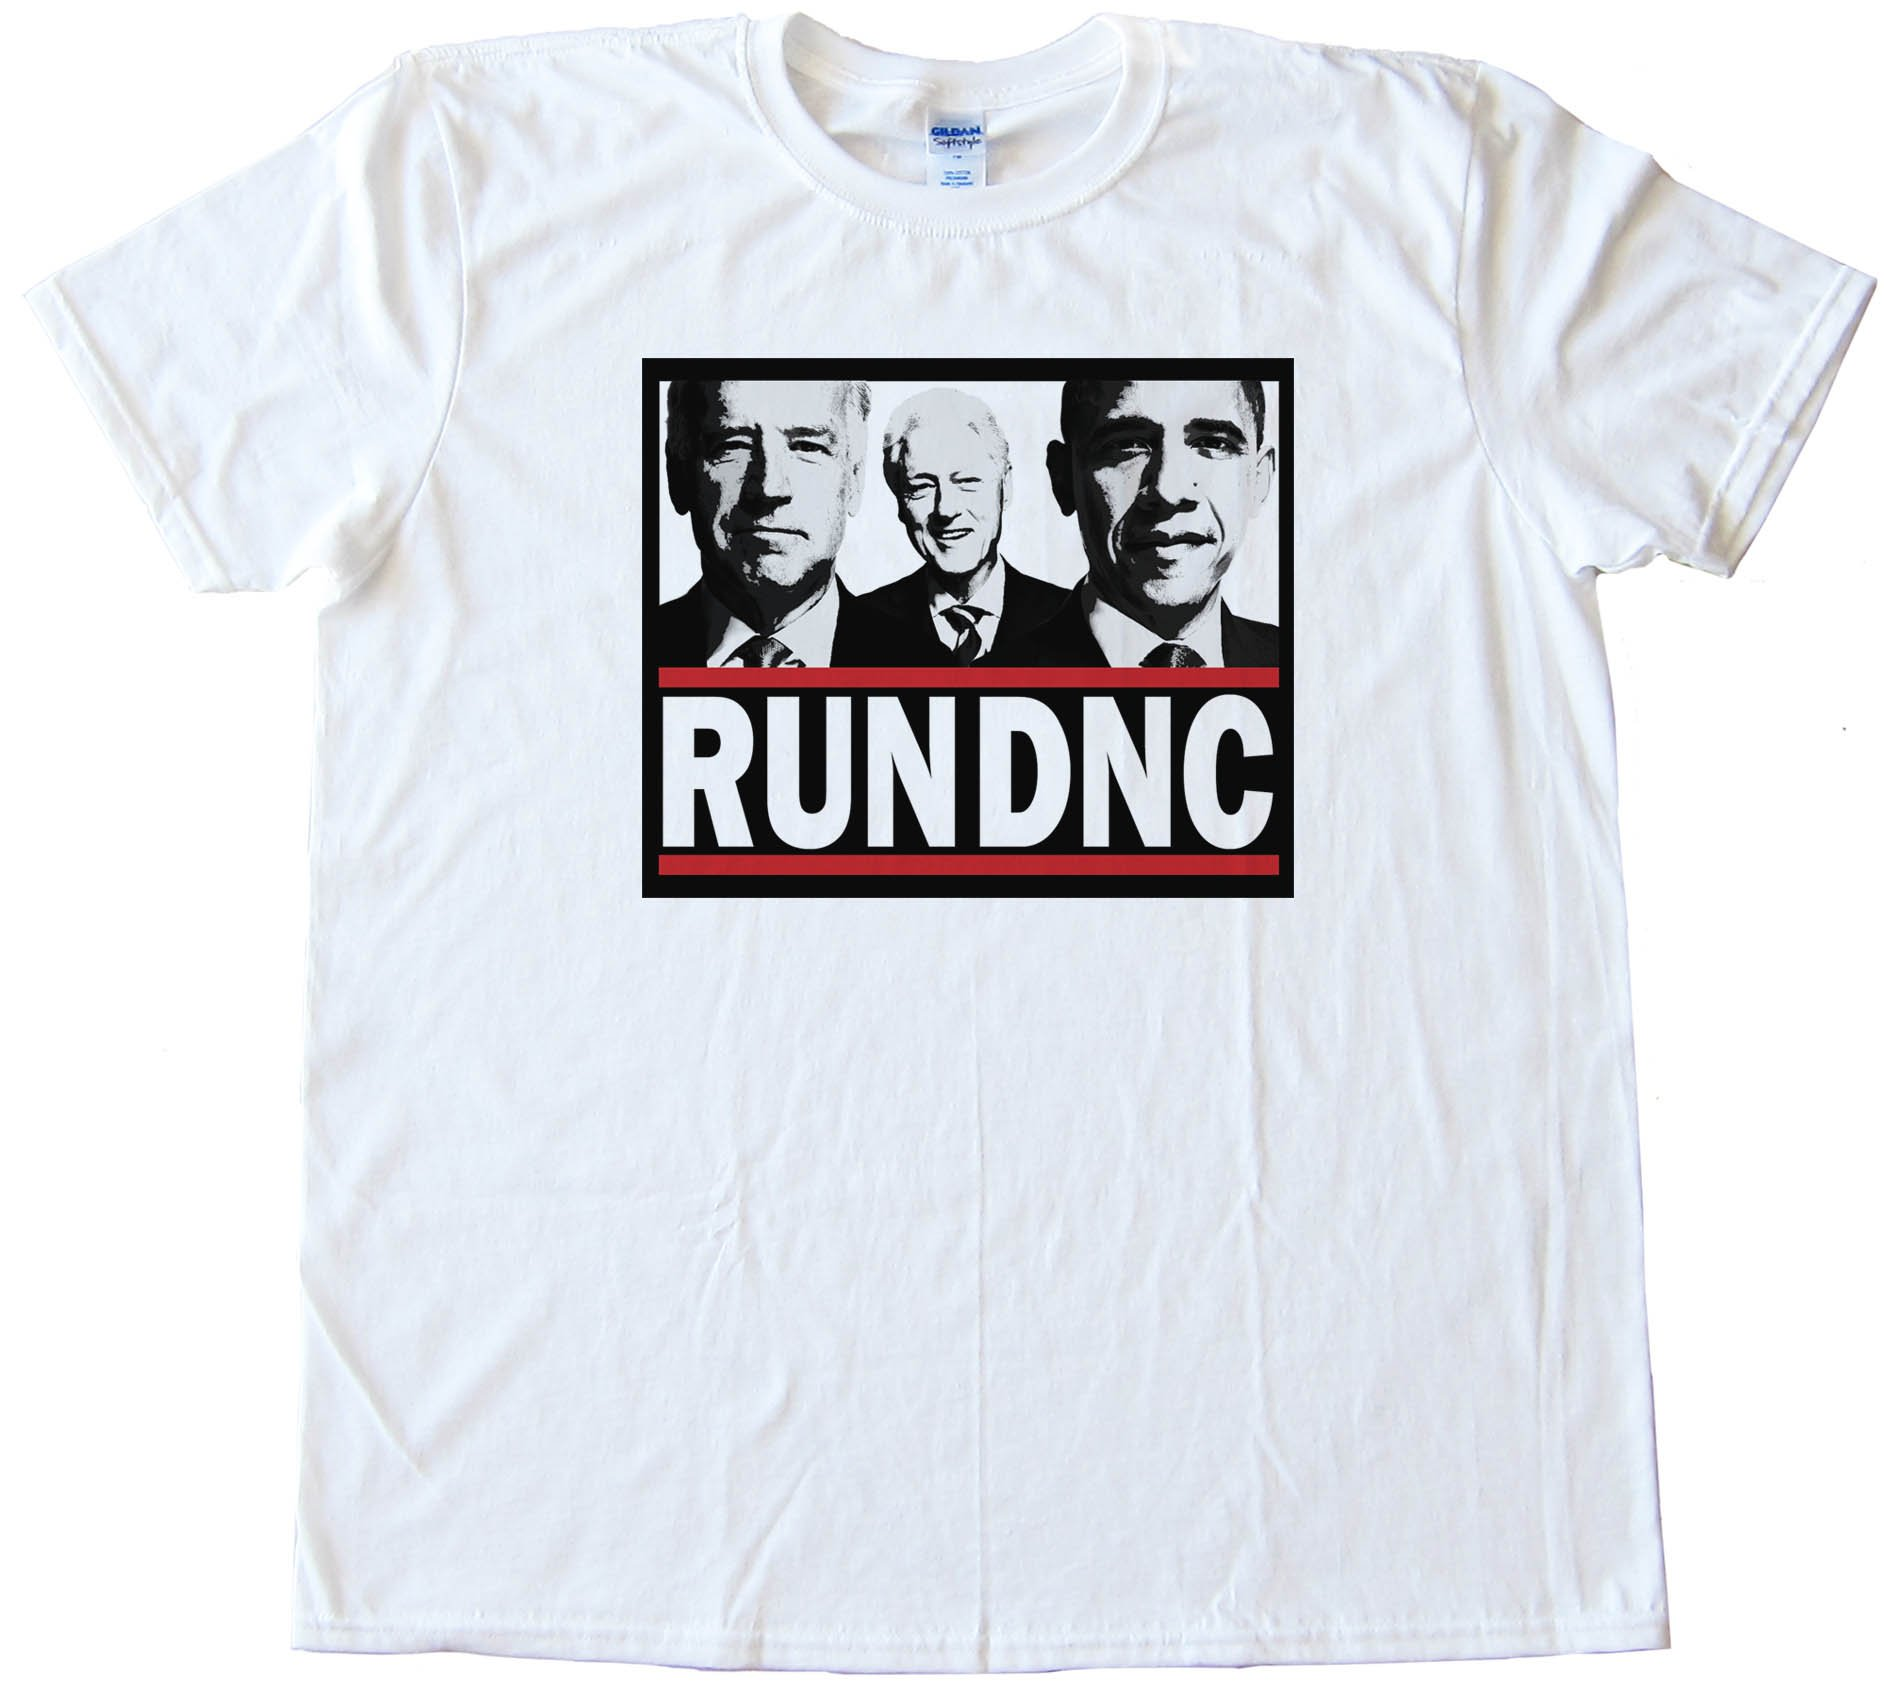 Run Dnc Biden Clinton Obama Democratic Campaign Shirt - Tee Shirt